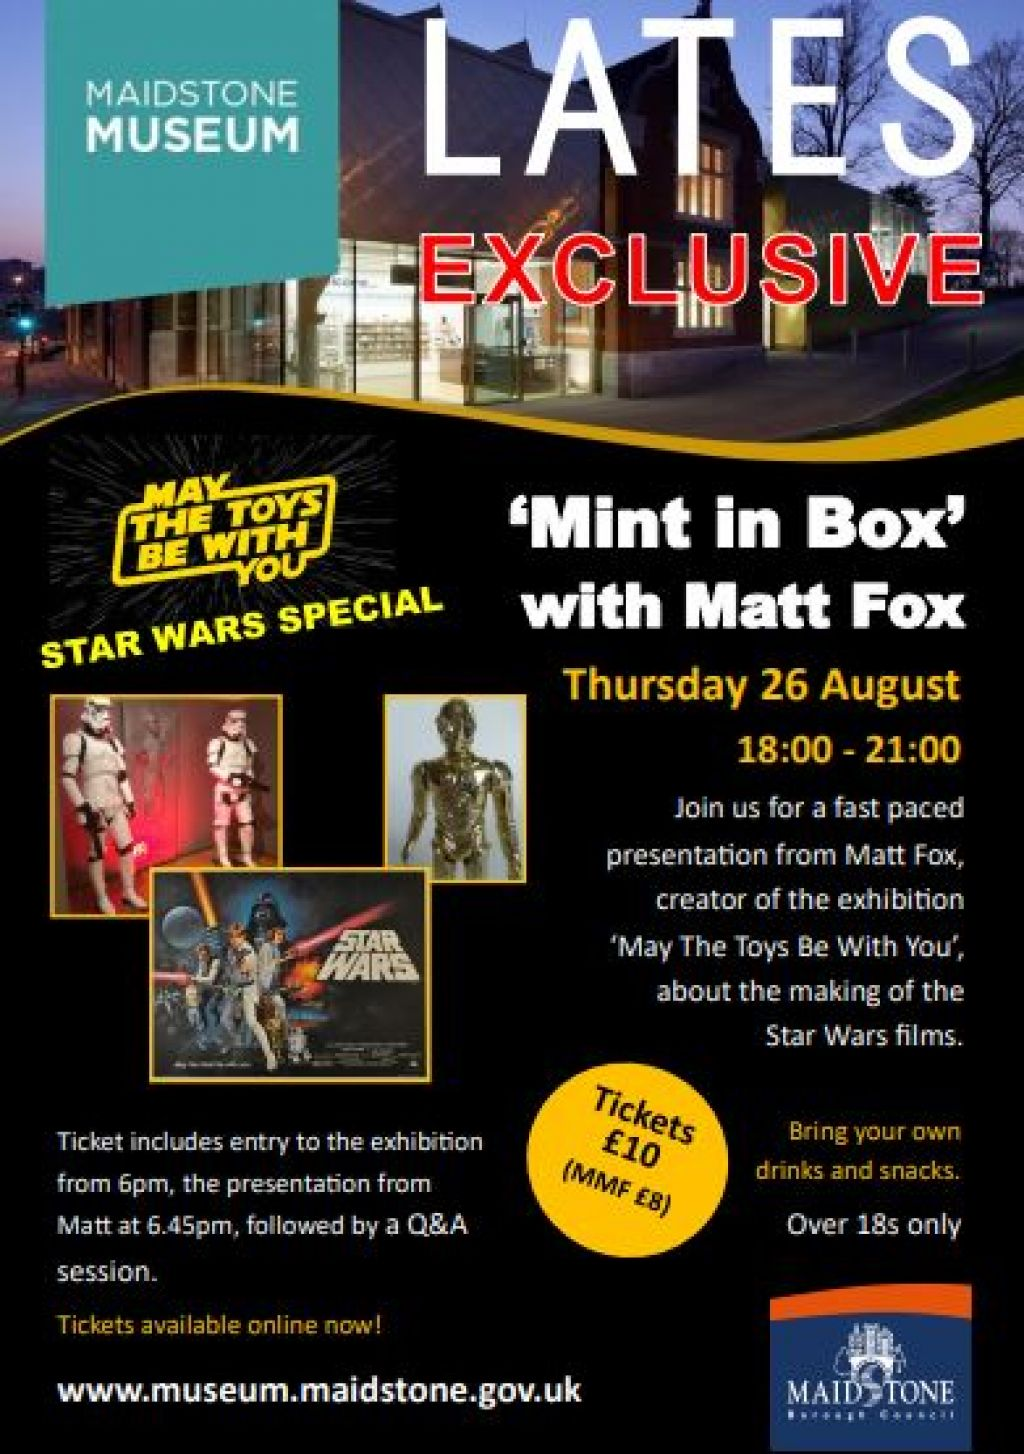 Calling all Star Wars Fans - May The Toys Be With You in Maidstone